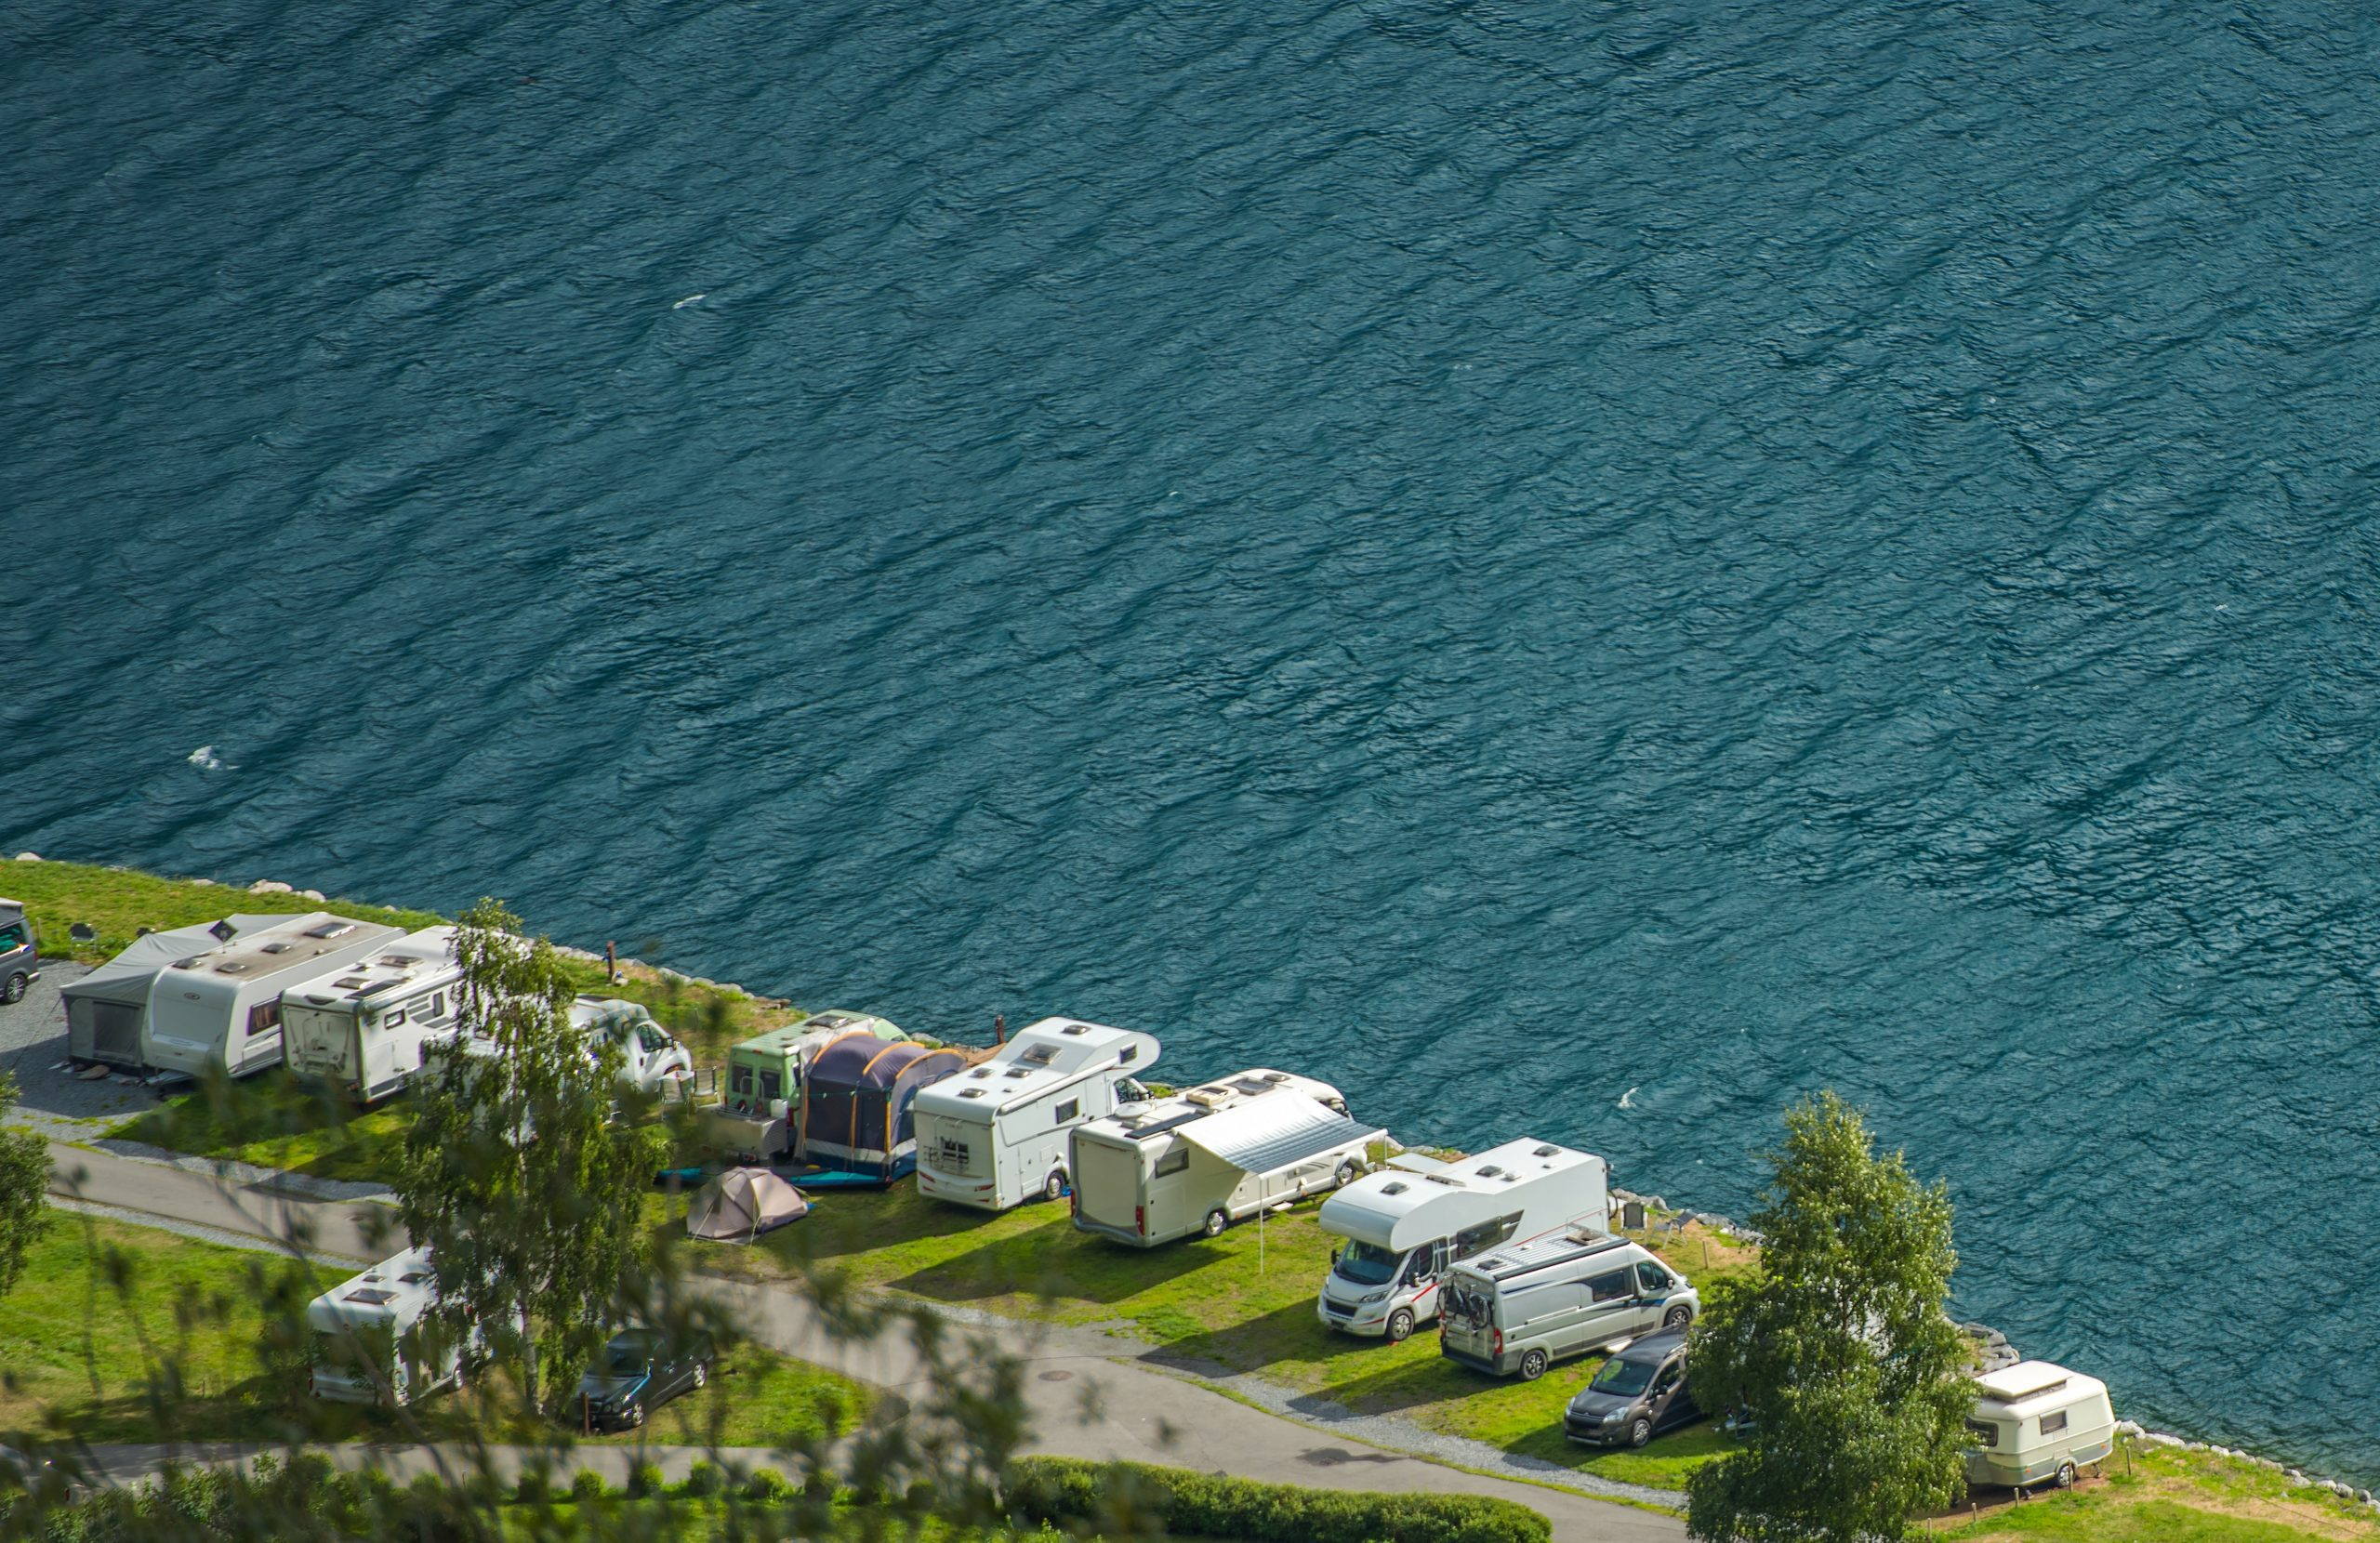 Scenic Waterfront RV Park. Recreational Vehicles Summer Camping.